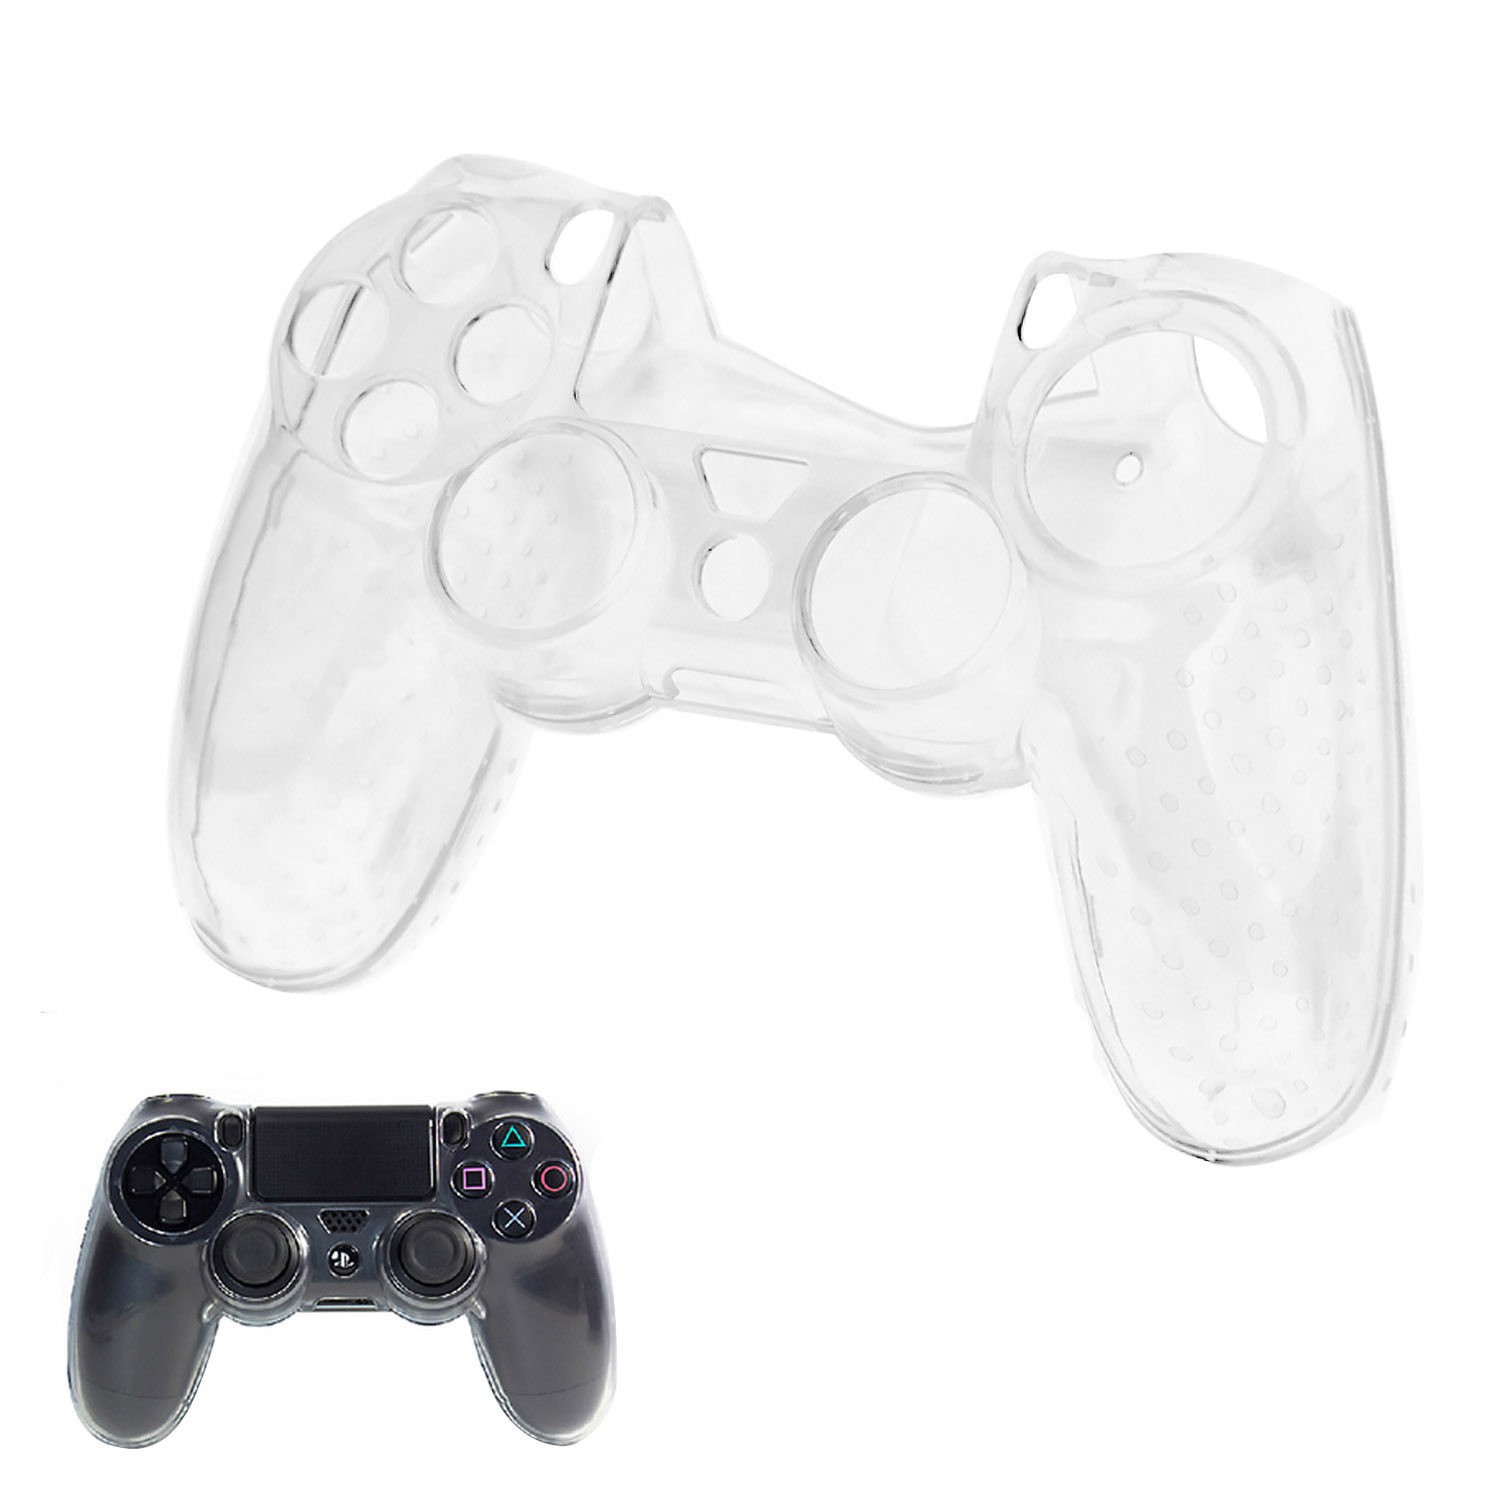 Bevigac Clear Hard Case Protective Cover Skin Shell for Sony Playstation PS4 Play Station PS 4 Console Controller Gamepad Joypad